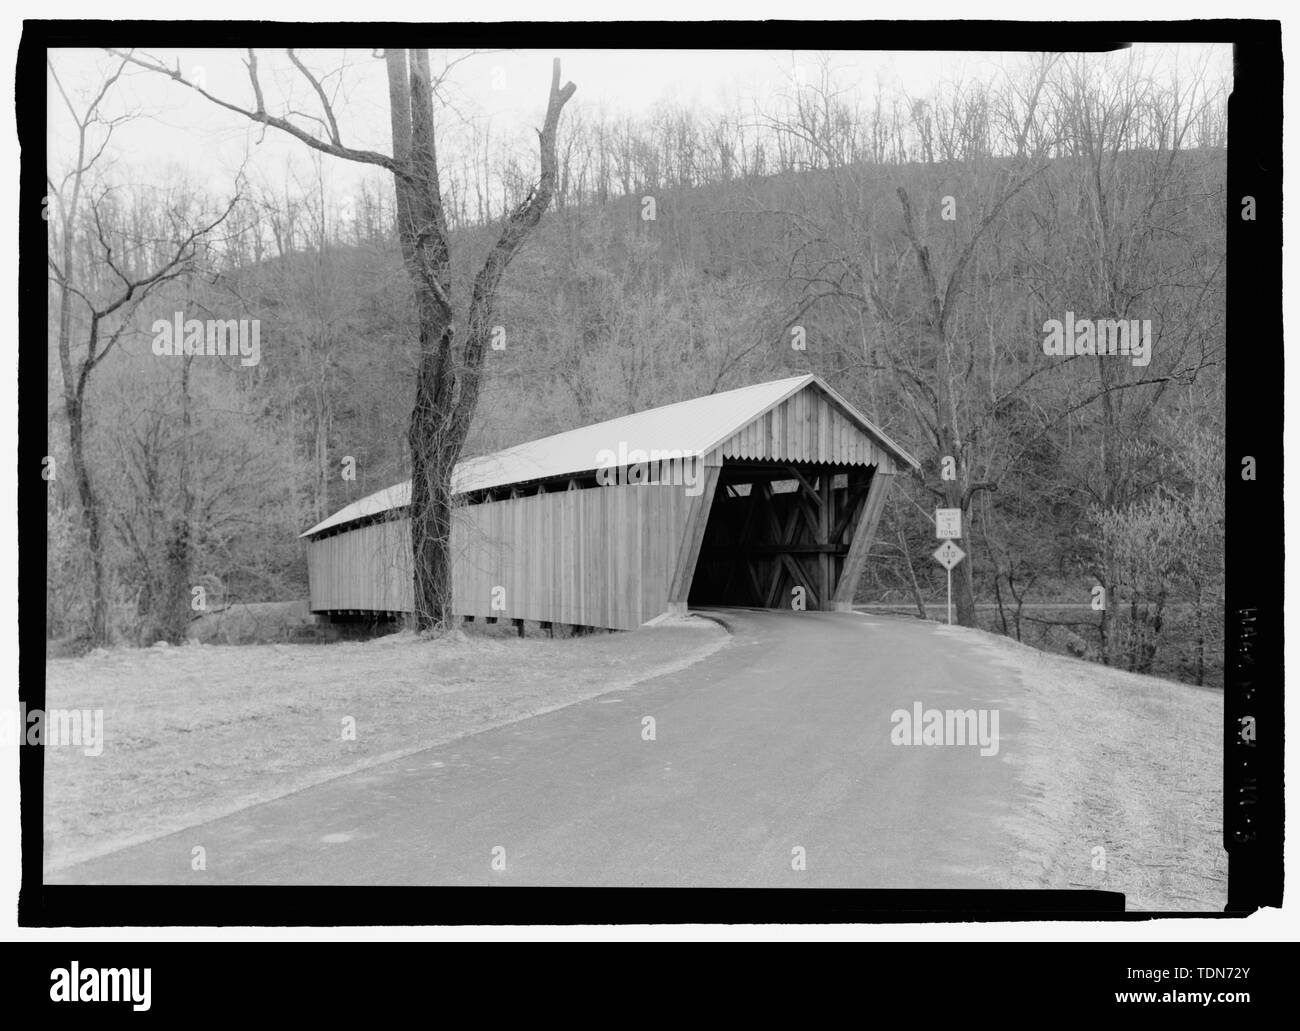 Perspective, from north. - Bennett's Mill Bridge, Spanning Tygart's Creek, East Tygart's Creek Road (CR 1215), Lynn, Greenup County, KY; Bennett, B F; Reid, A L; Wheeler, Isaac Hastings; Wheeler, William; McGee, E A; Darlington, Joseph; Darlington, Gabriel; Bennett, William  P; Bennett, Benjamin  F; Federal Highway Association; Bower Bridge Company; Bower, Louis; Intech Contracting; Marston, Christopher, project manager; Christianson, Justine, transmitter; Federal Highway Administration, sponsor - Stock Image